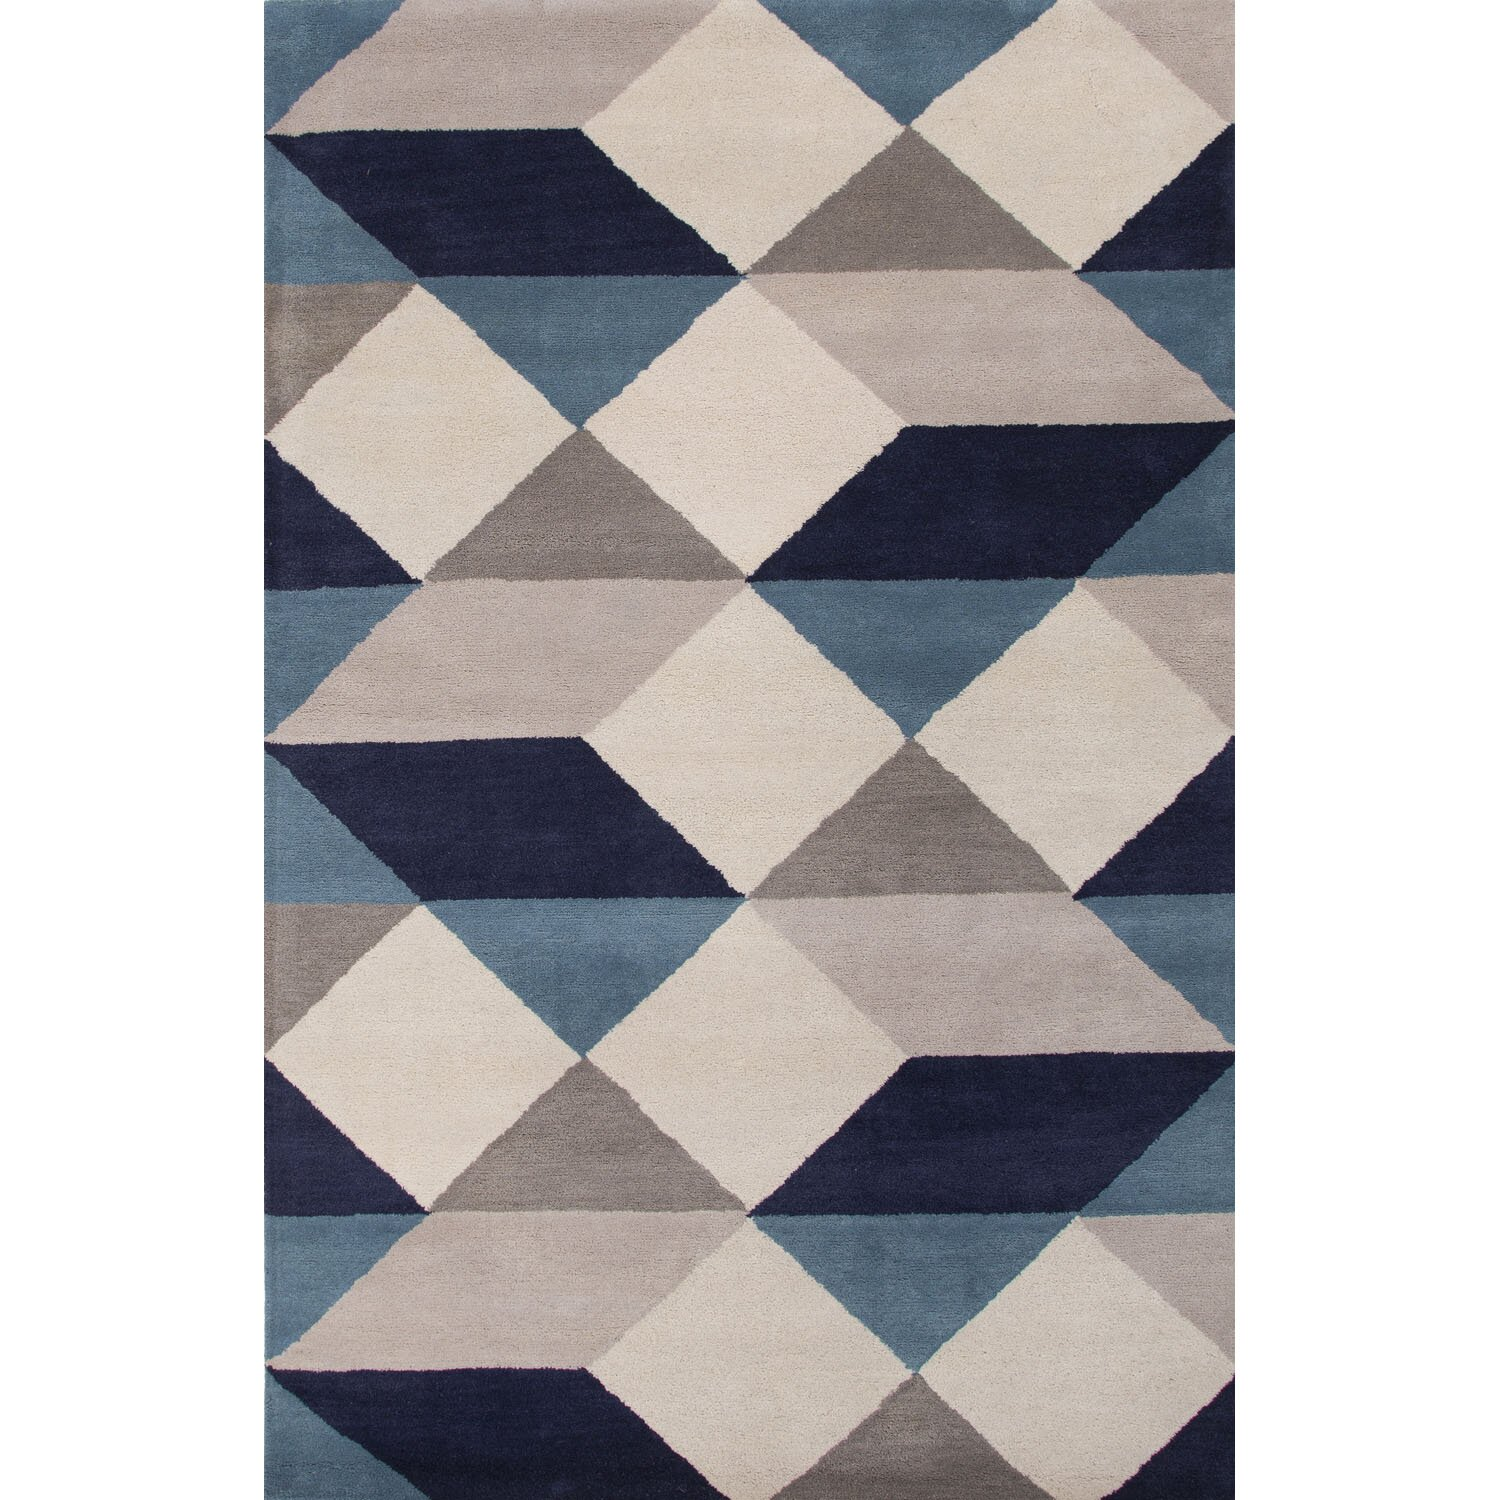 Jaipurliving En Casa Gray Blue Geometric Area Rug